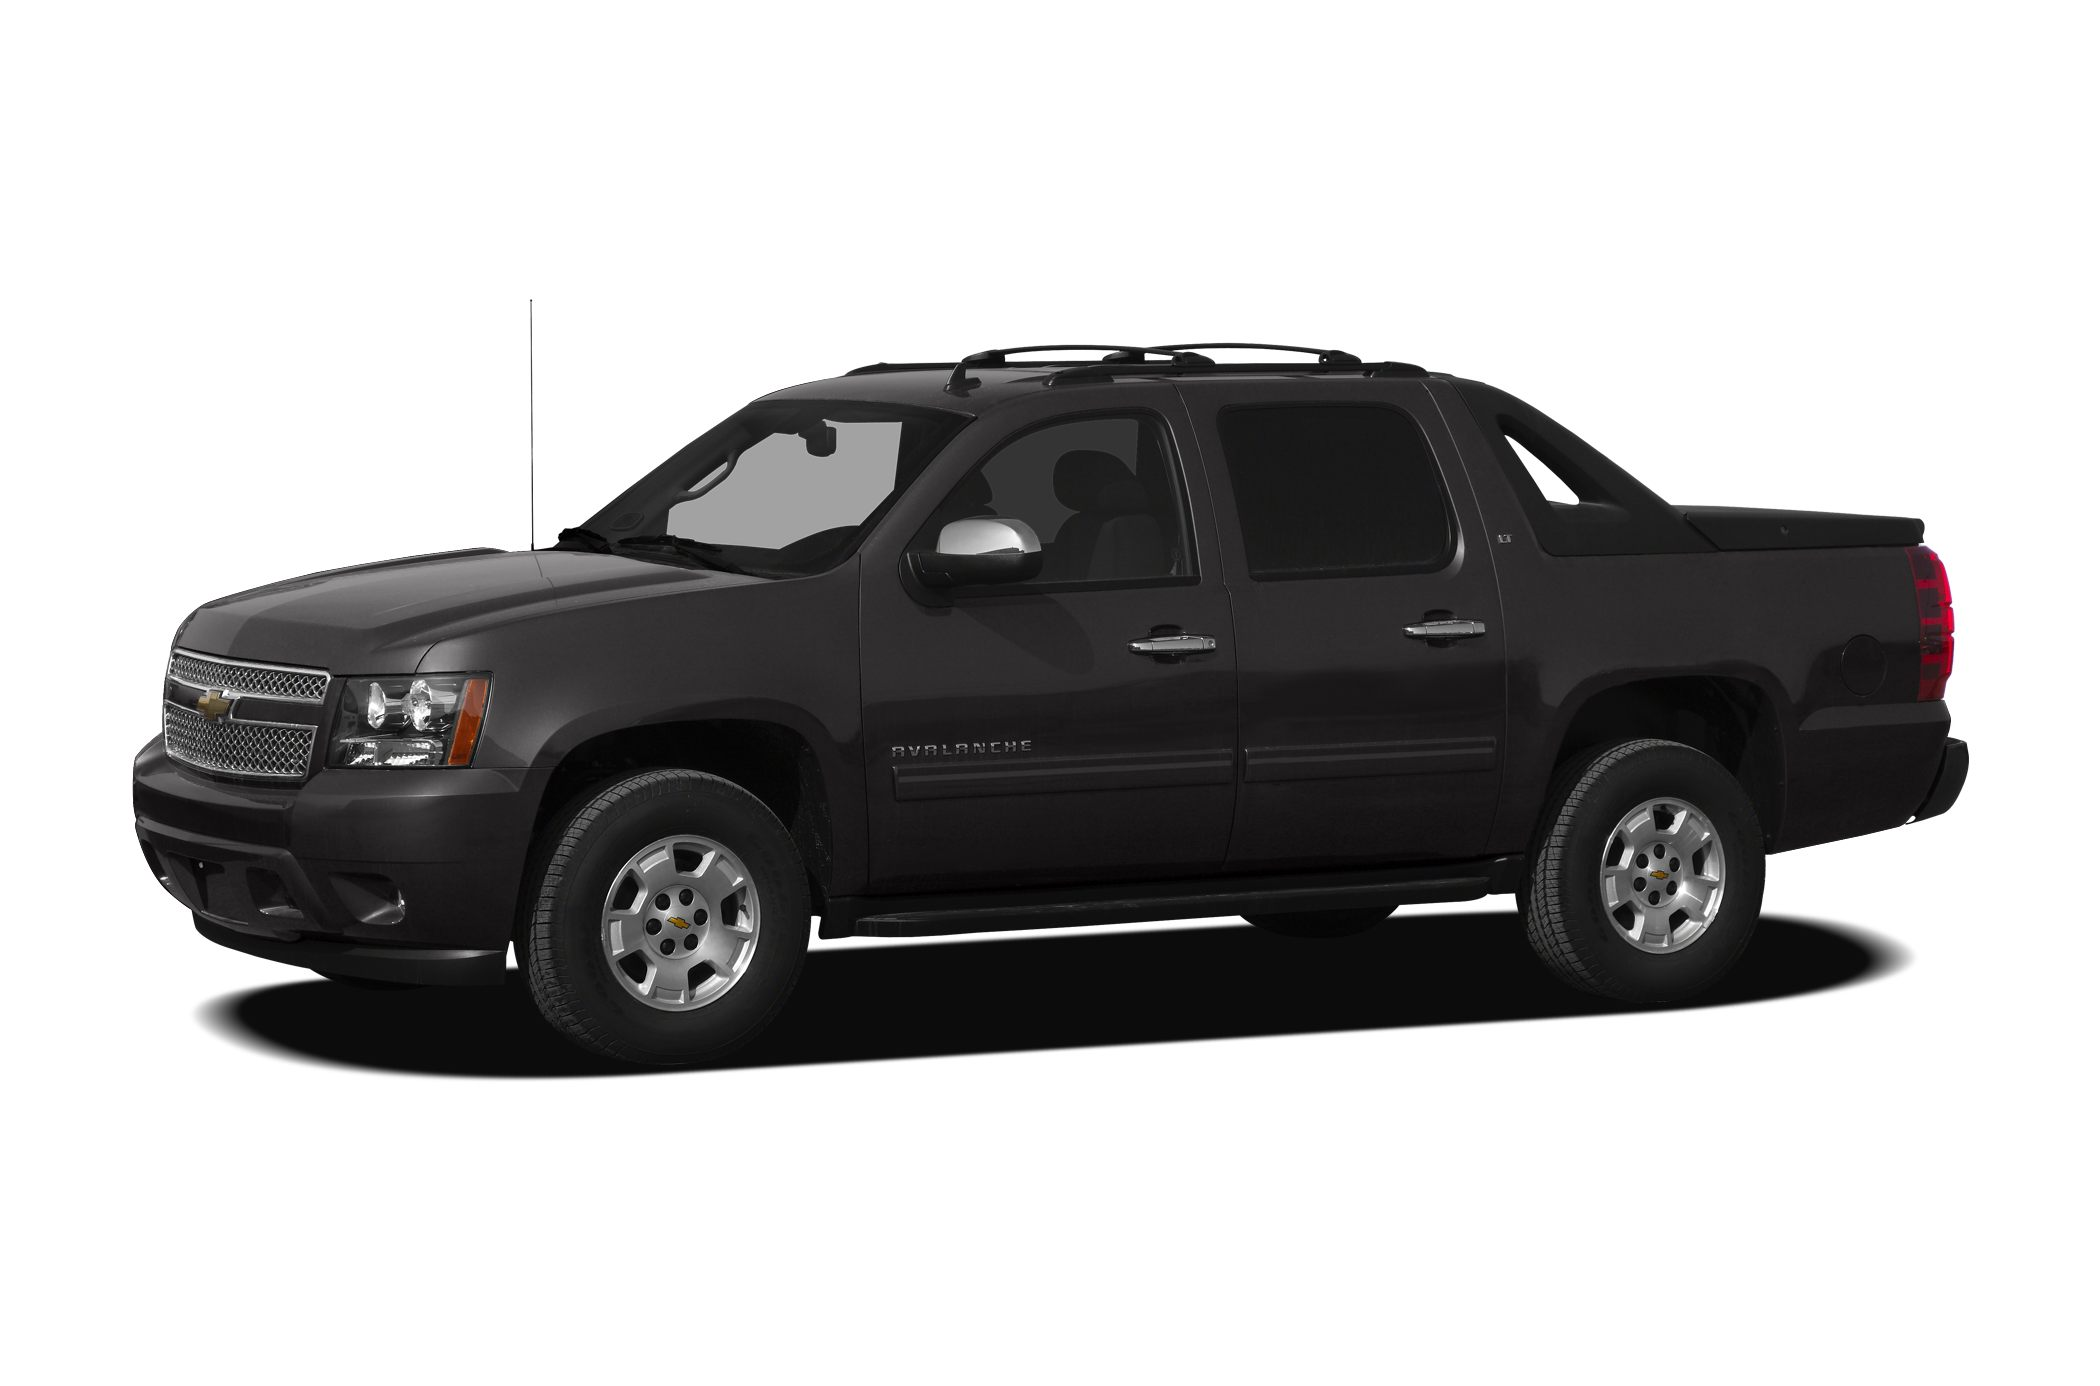 2012 Chevrolet Avalanche 1500 LT Crew Cab Pickup for sale in Houston for $30,981 with 61,200 miles.